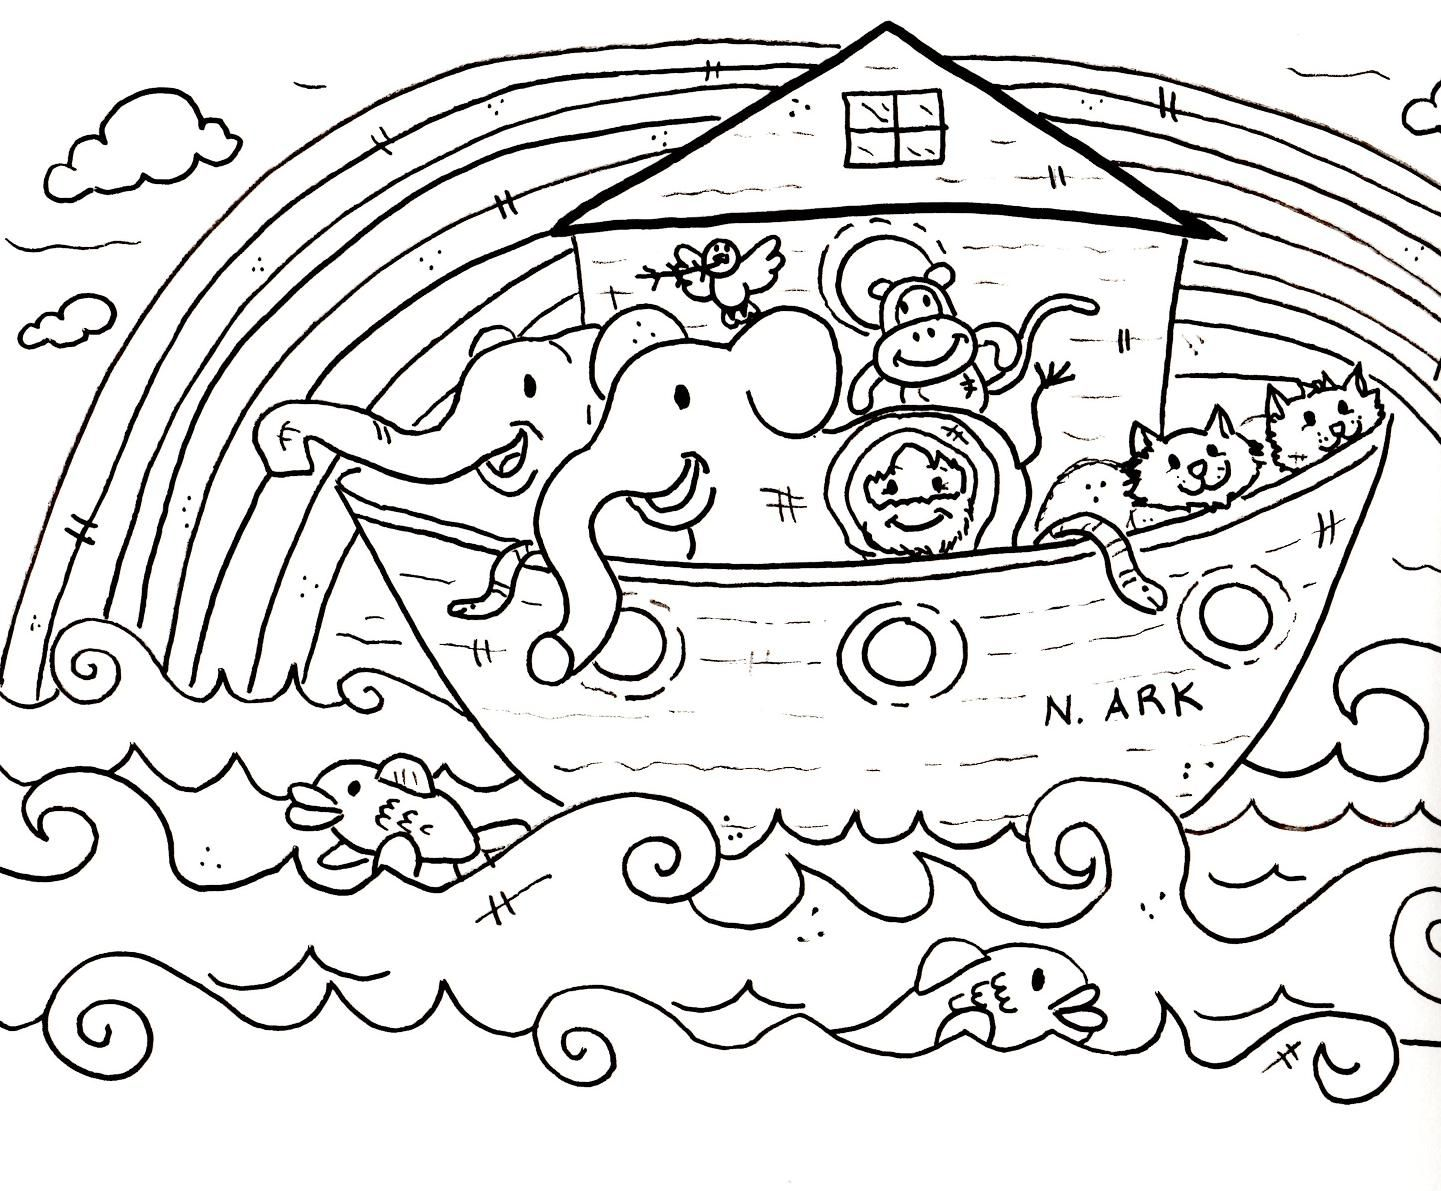 Childrens online colouring book - Children Coloring Pages For Church Sunday School Coloring Pages Coloring Pages